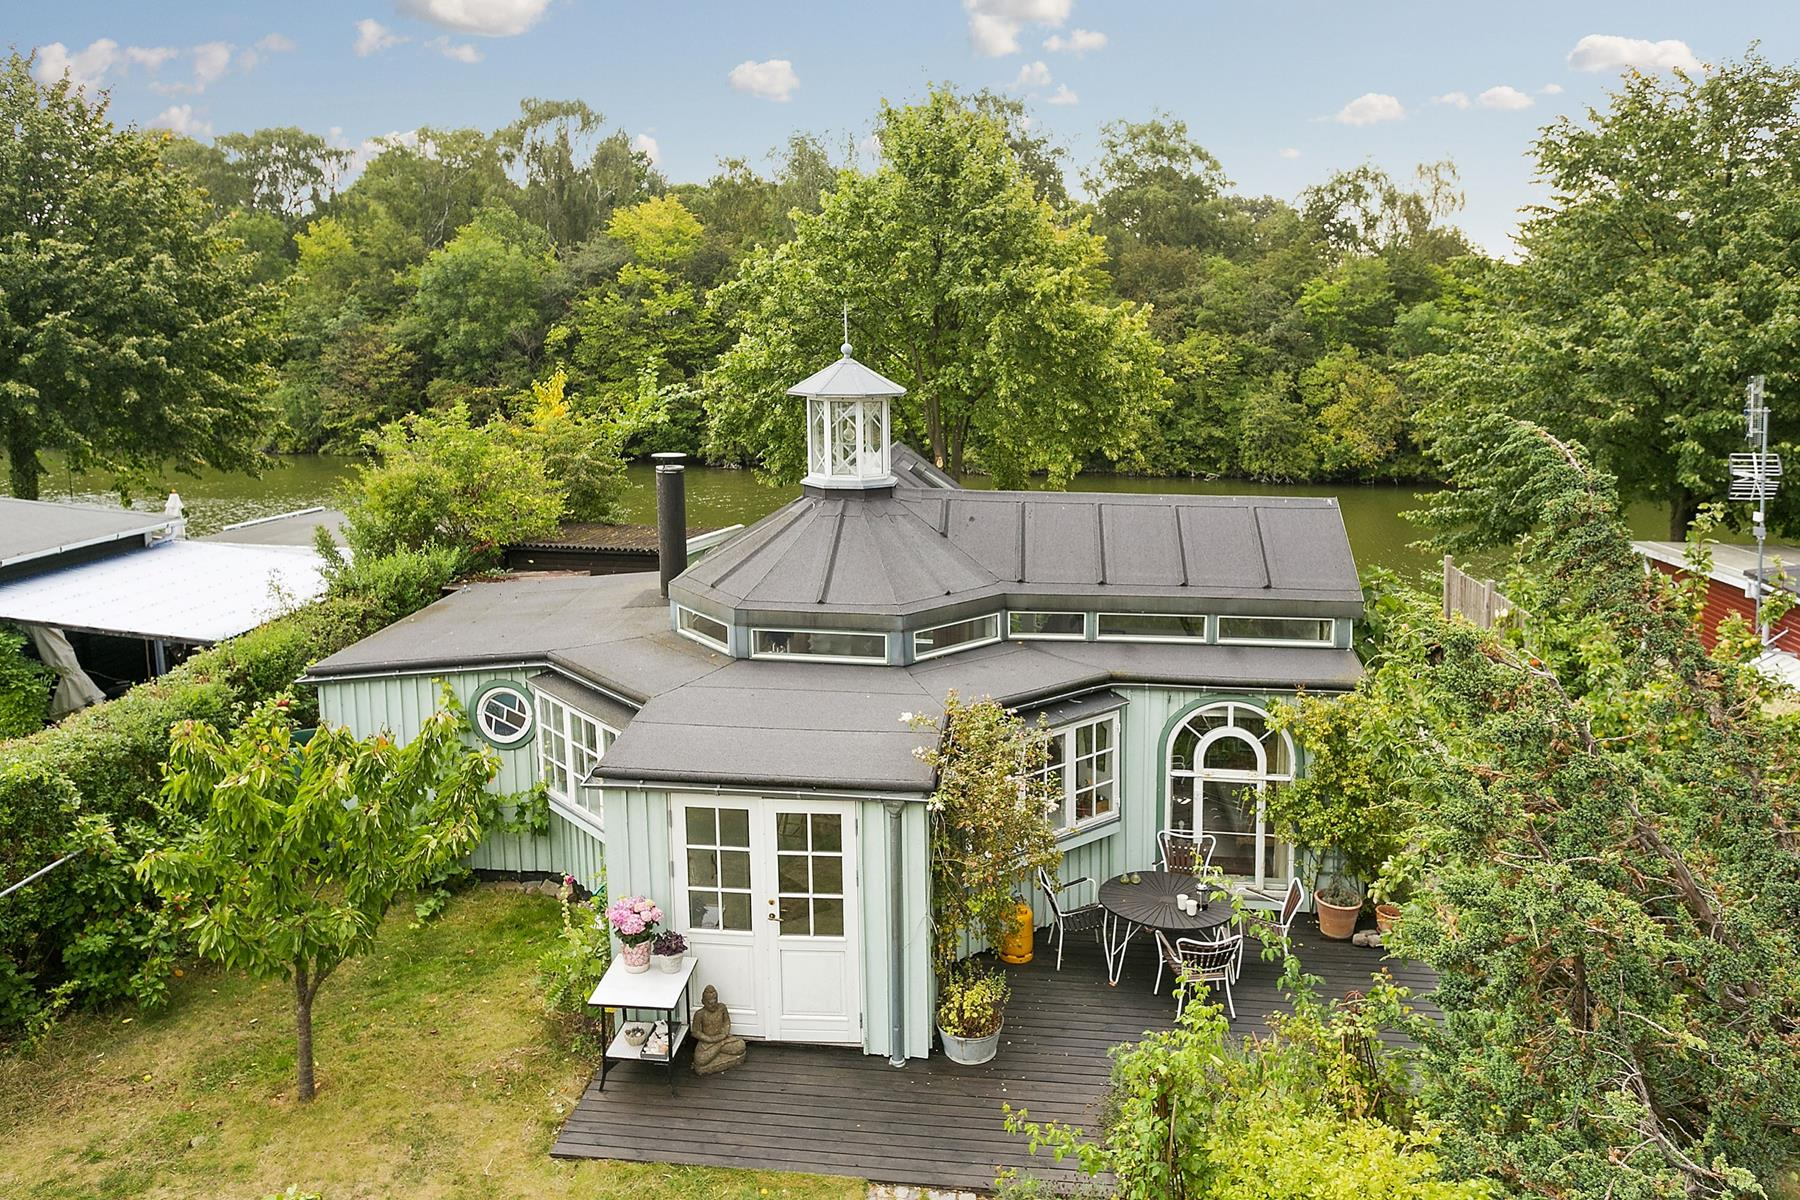 Fanciful Allotment Hut In Denmark